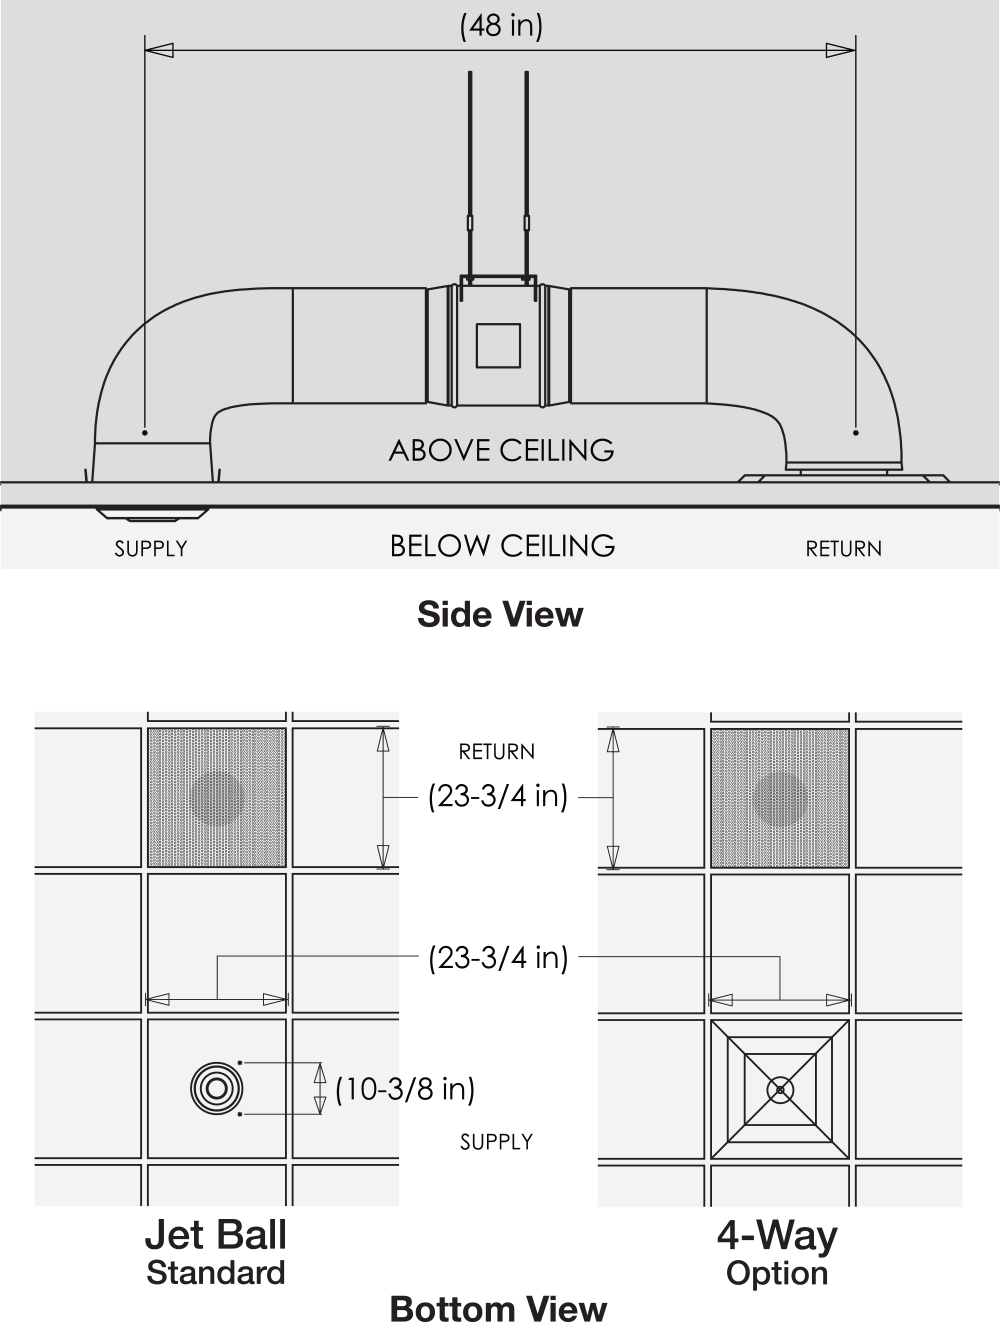 IC30 AC technical drawing